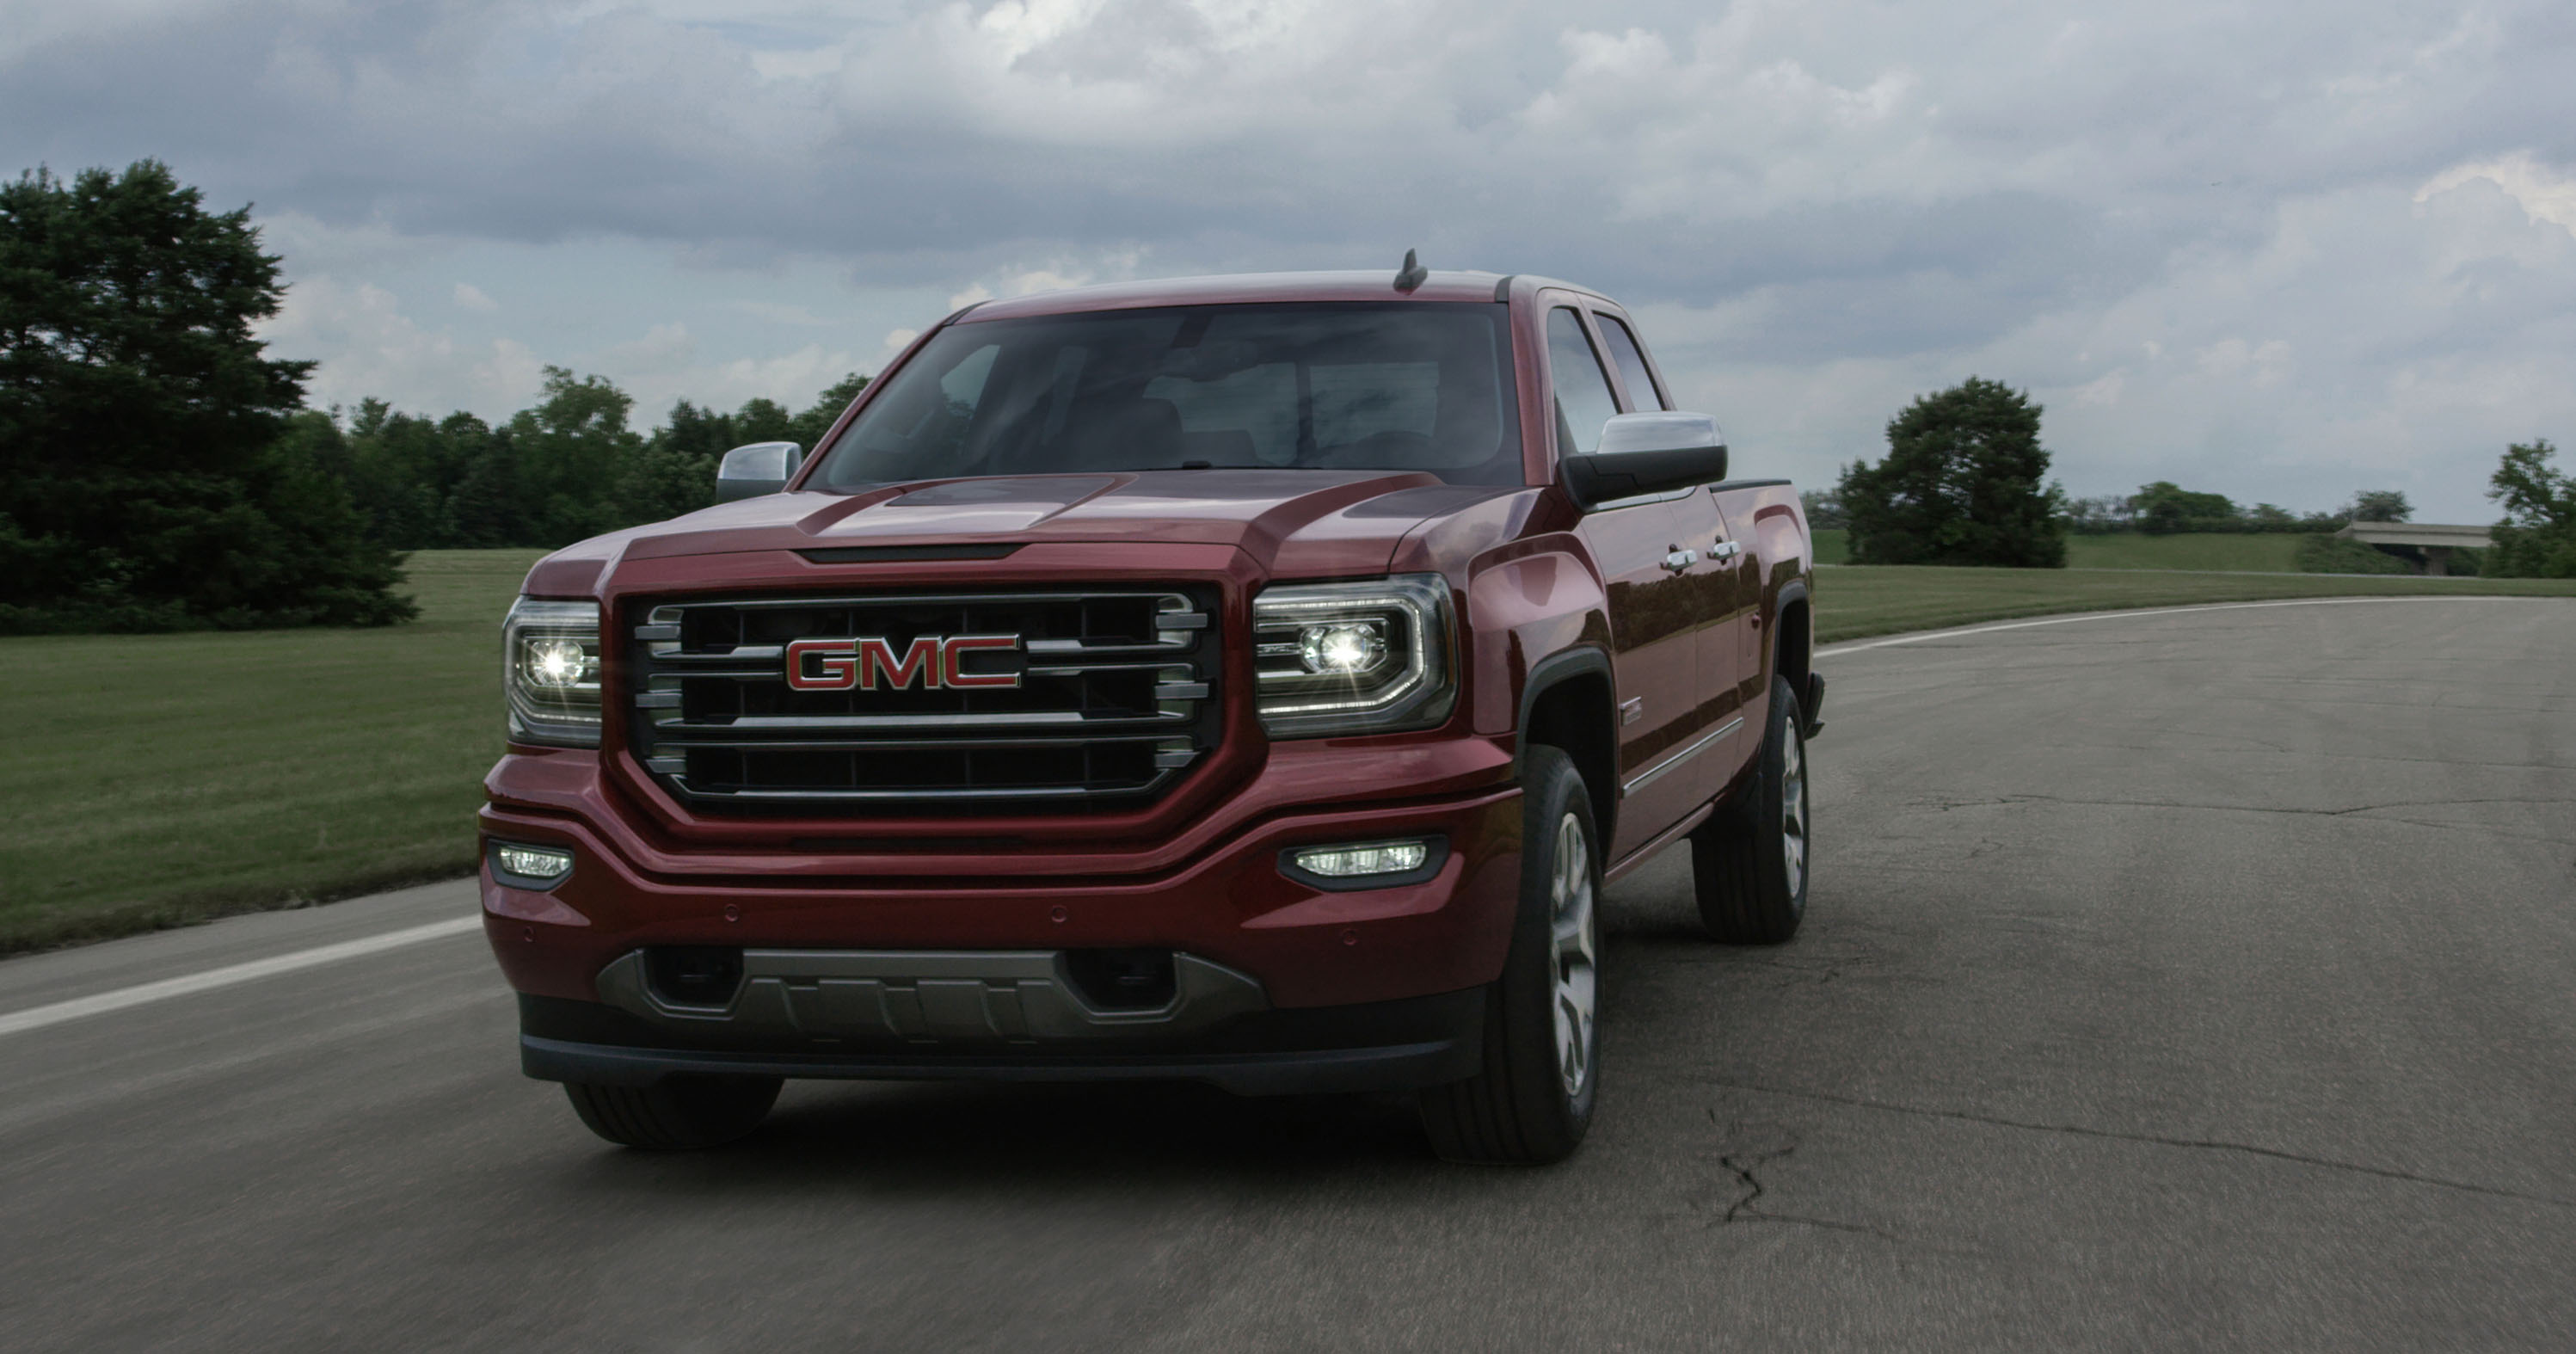 new and used gmc sierra 1500 prices photos reviews specs the car connection. Black Bedroom Furniture Sets. Home Design Ideas